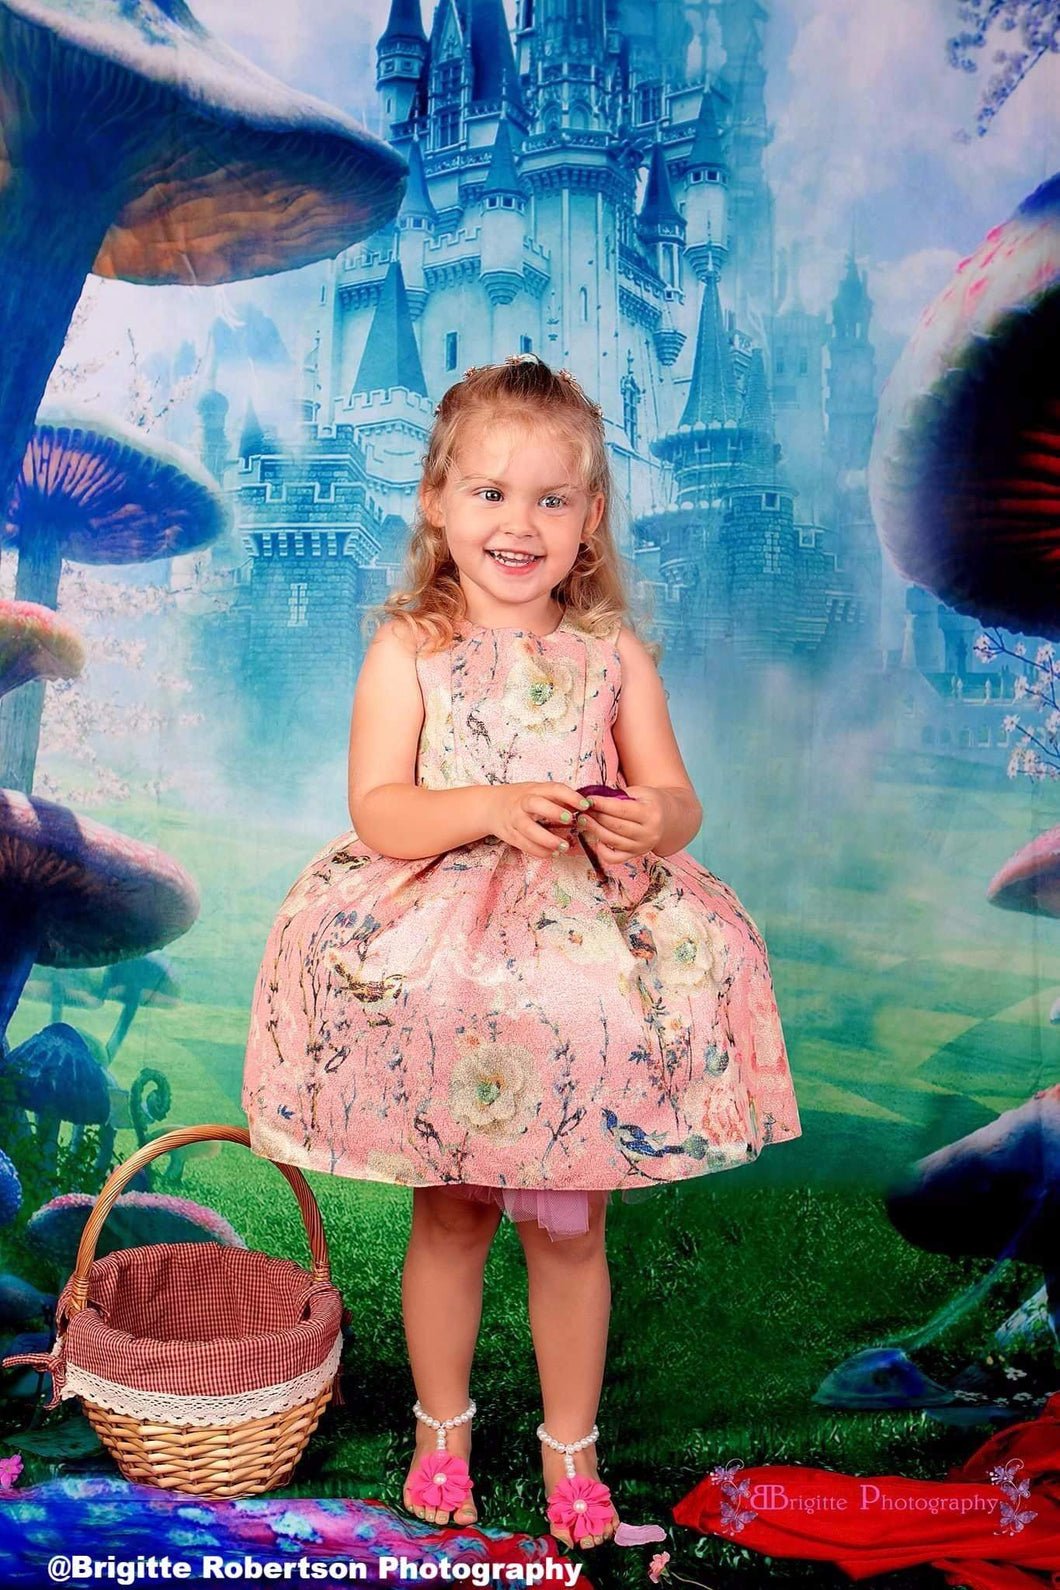 Katebackdrop:Kate Forest Alice wonderland Castle Photography Backdrops